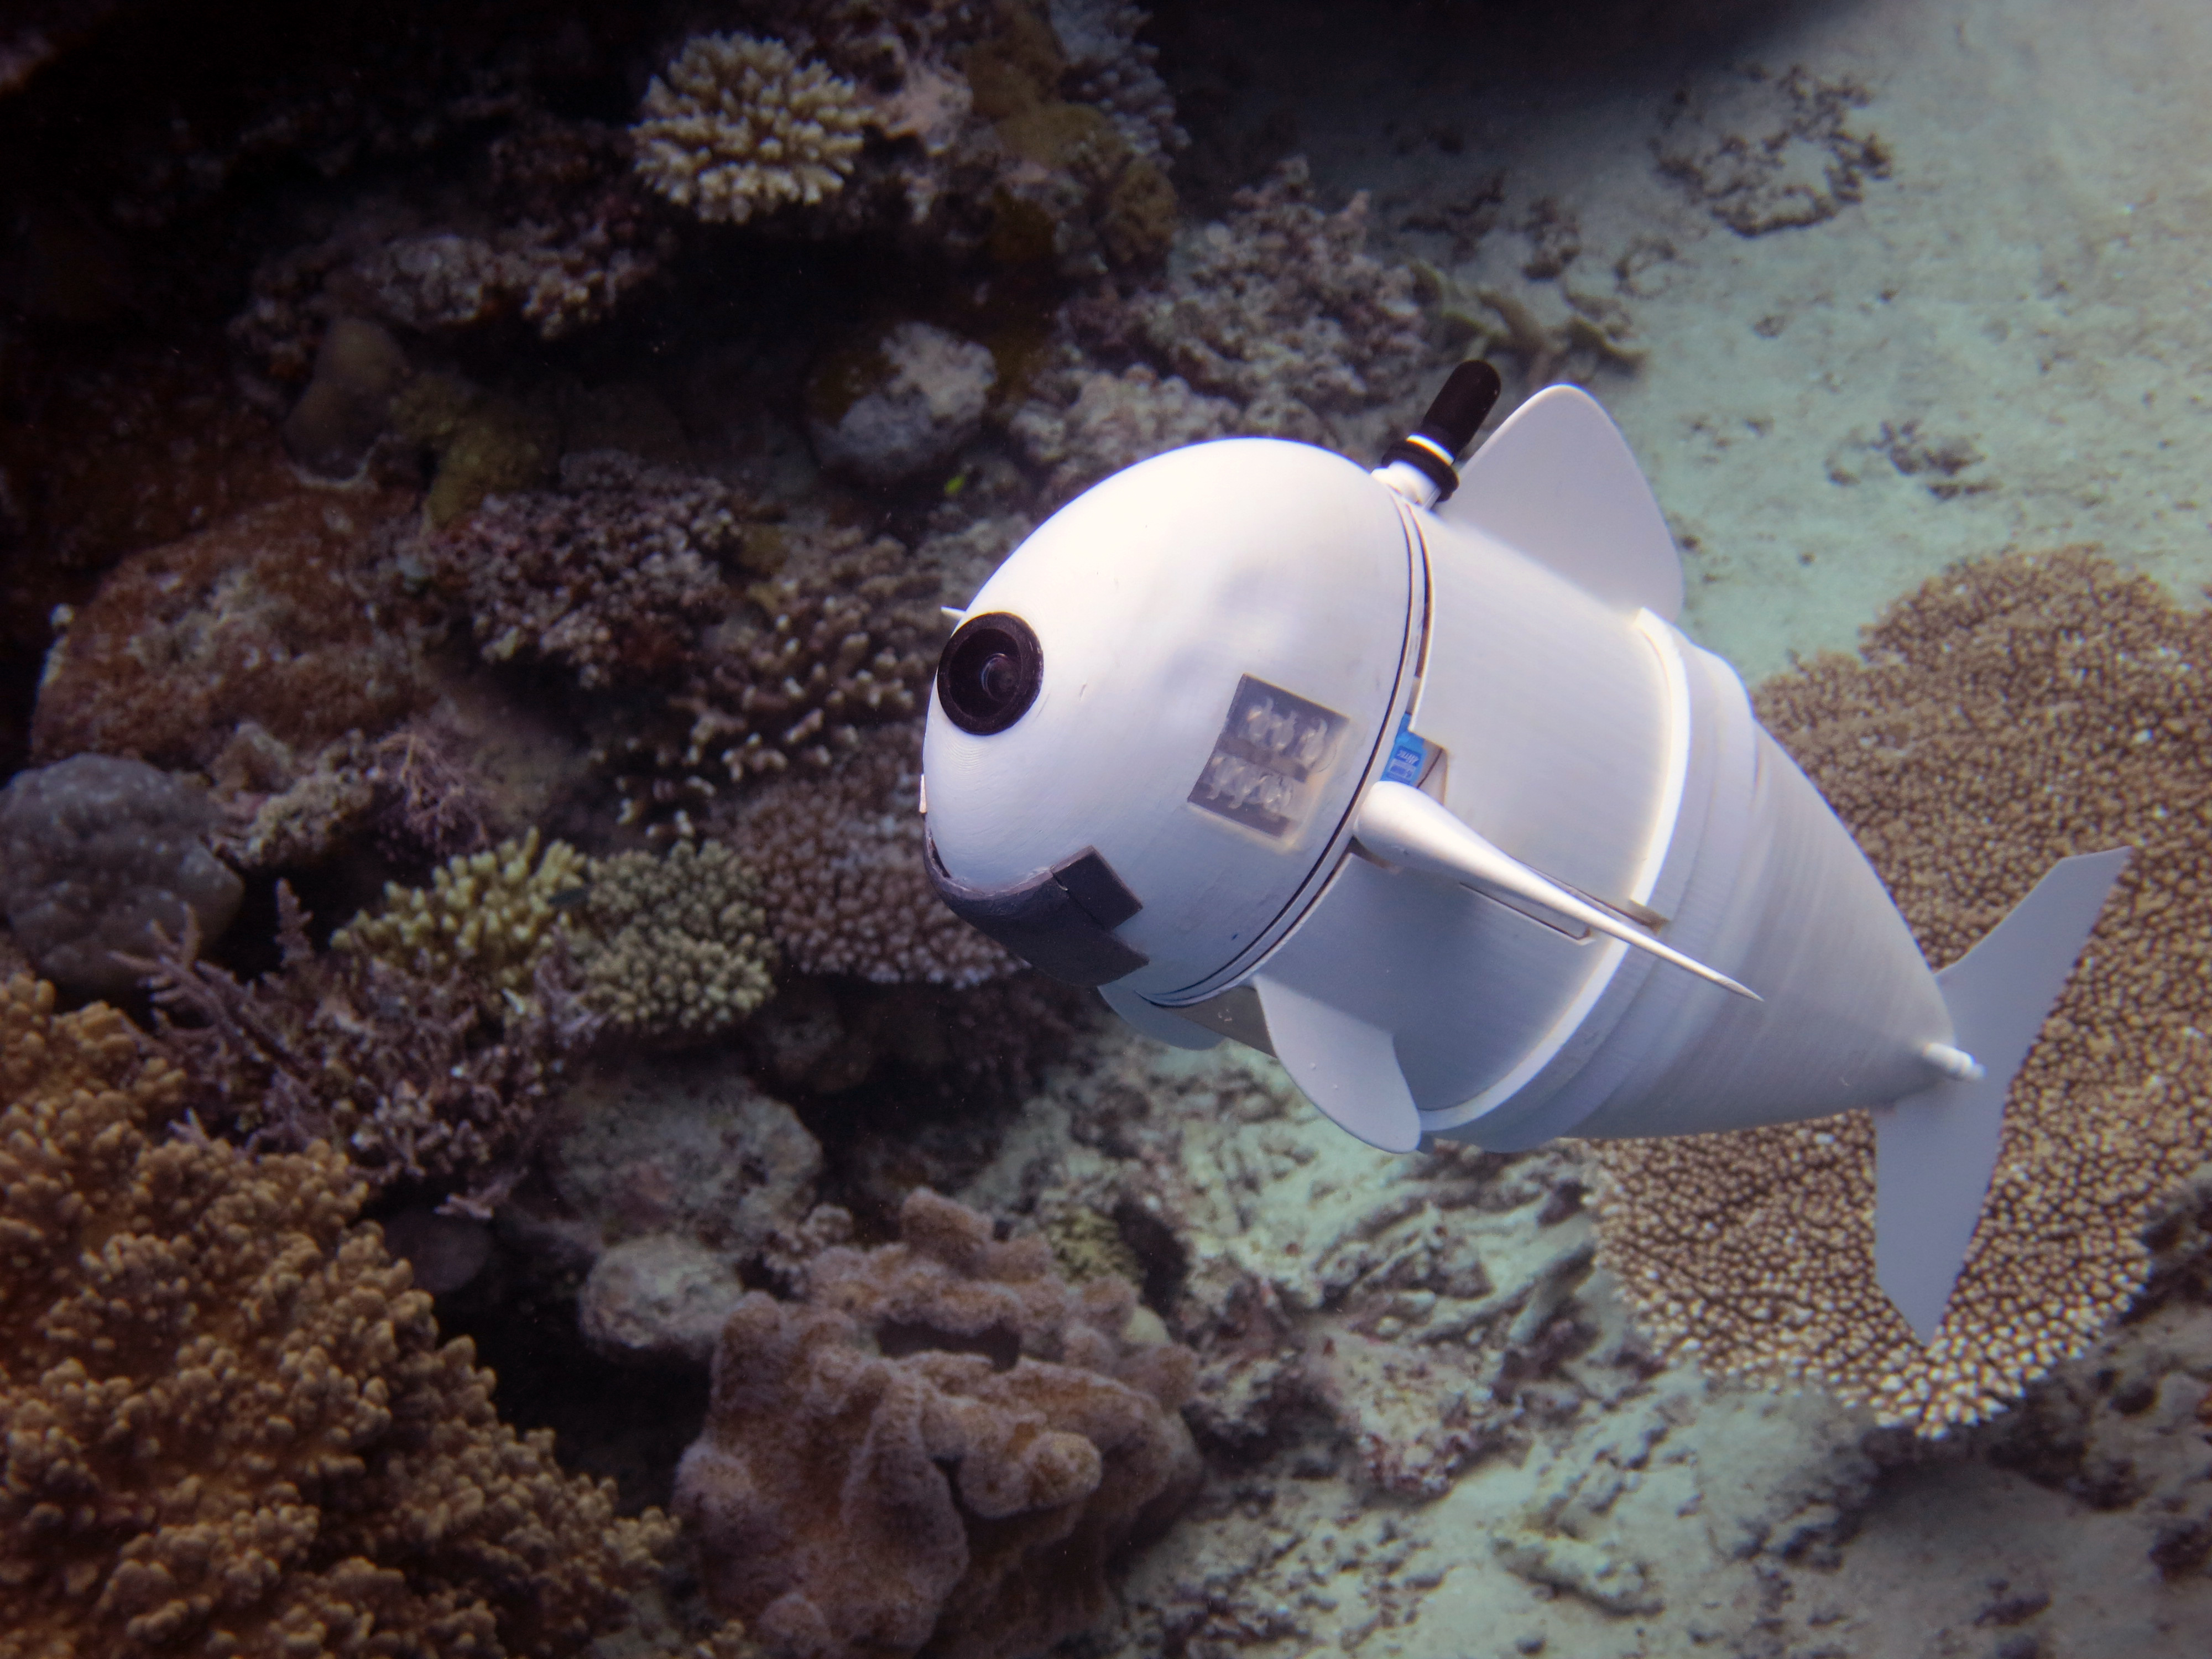 3D printed soft robot fish swims and blends into natural habitat